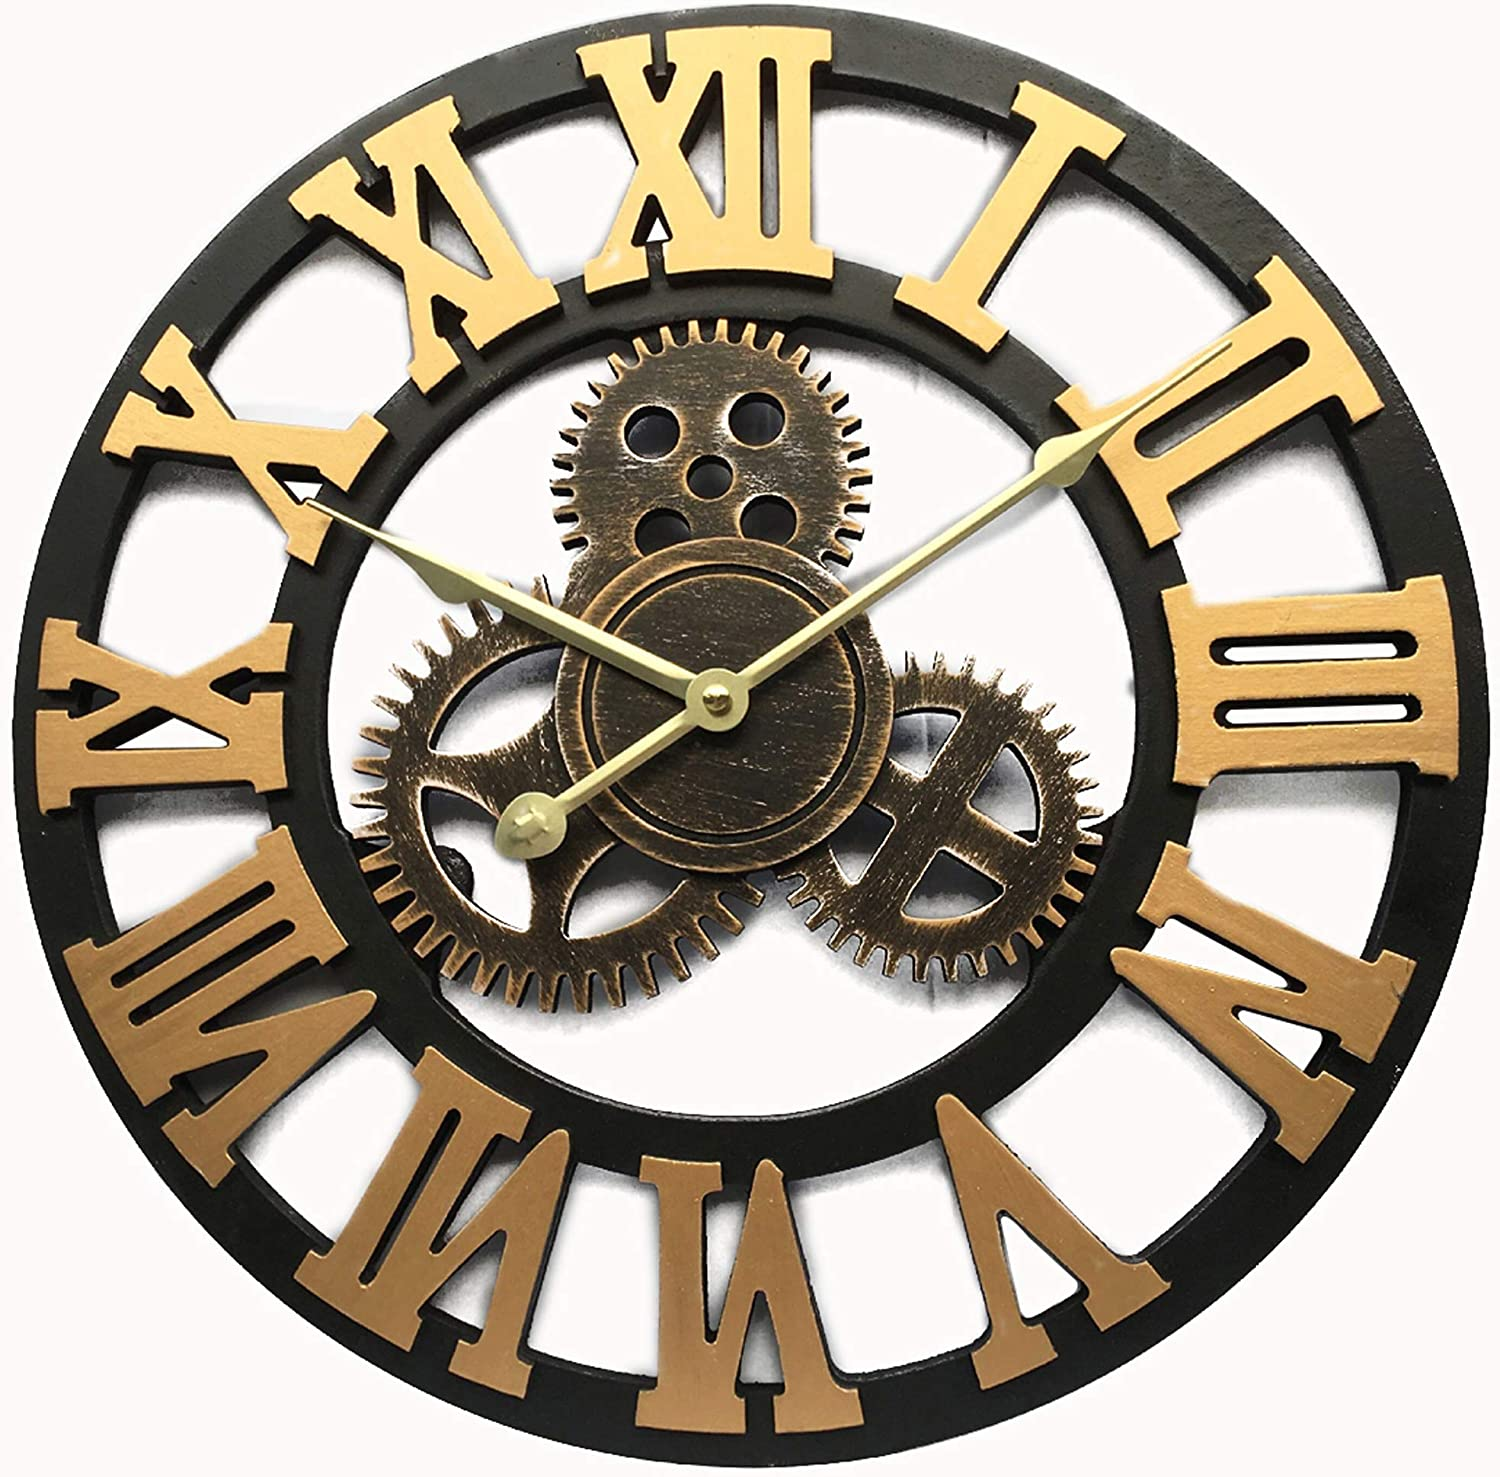 Vintage Decorative Wall Clock Large 16inch with Industrial Gears Non Ticking Home Decor Clocks,Battery Operated,Metal Effect (Gold)